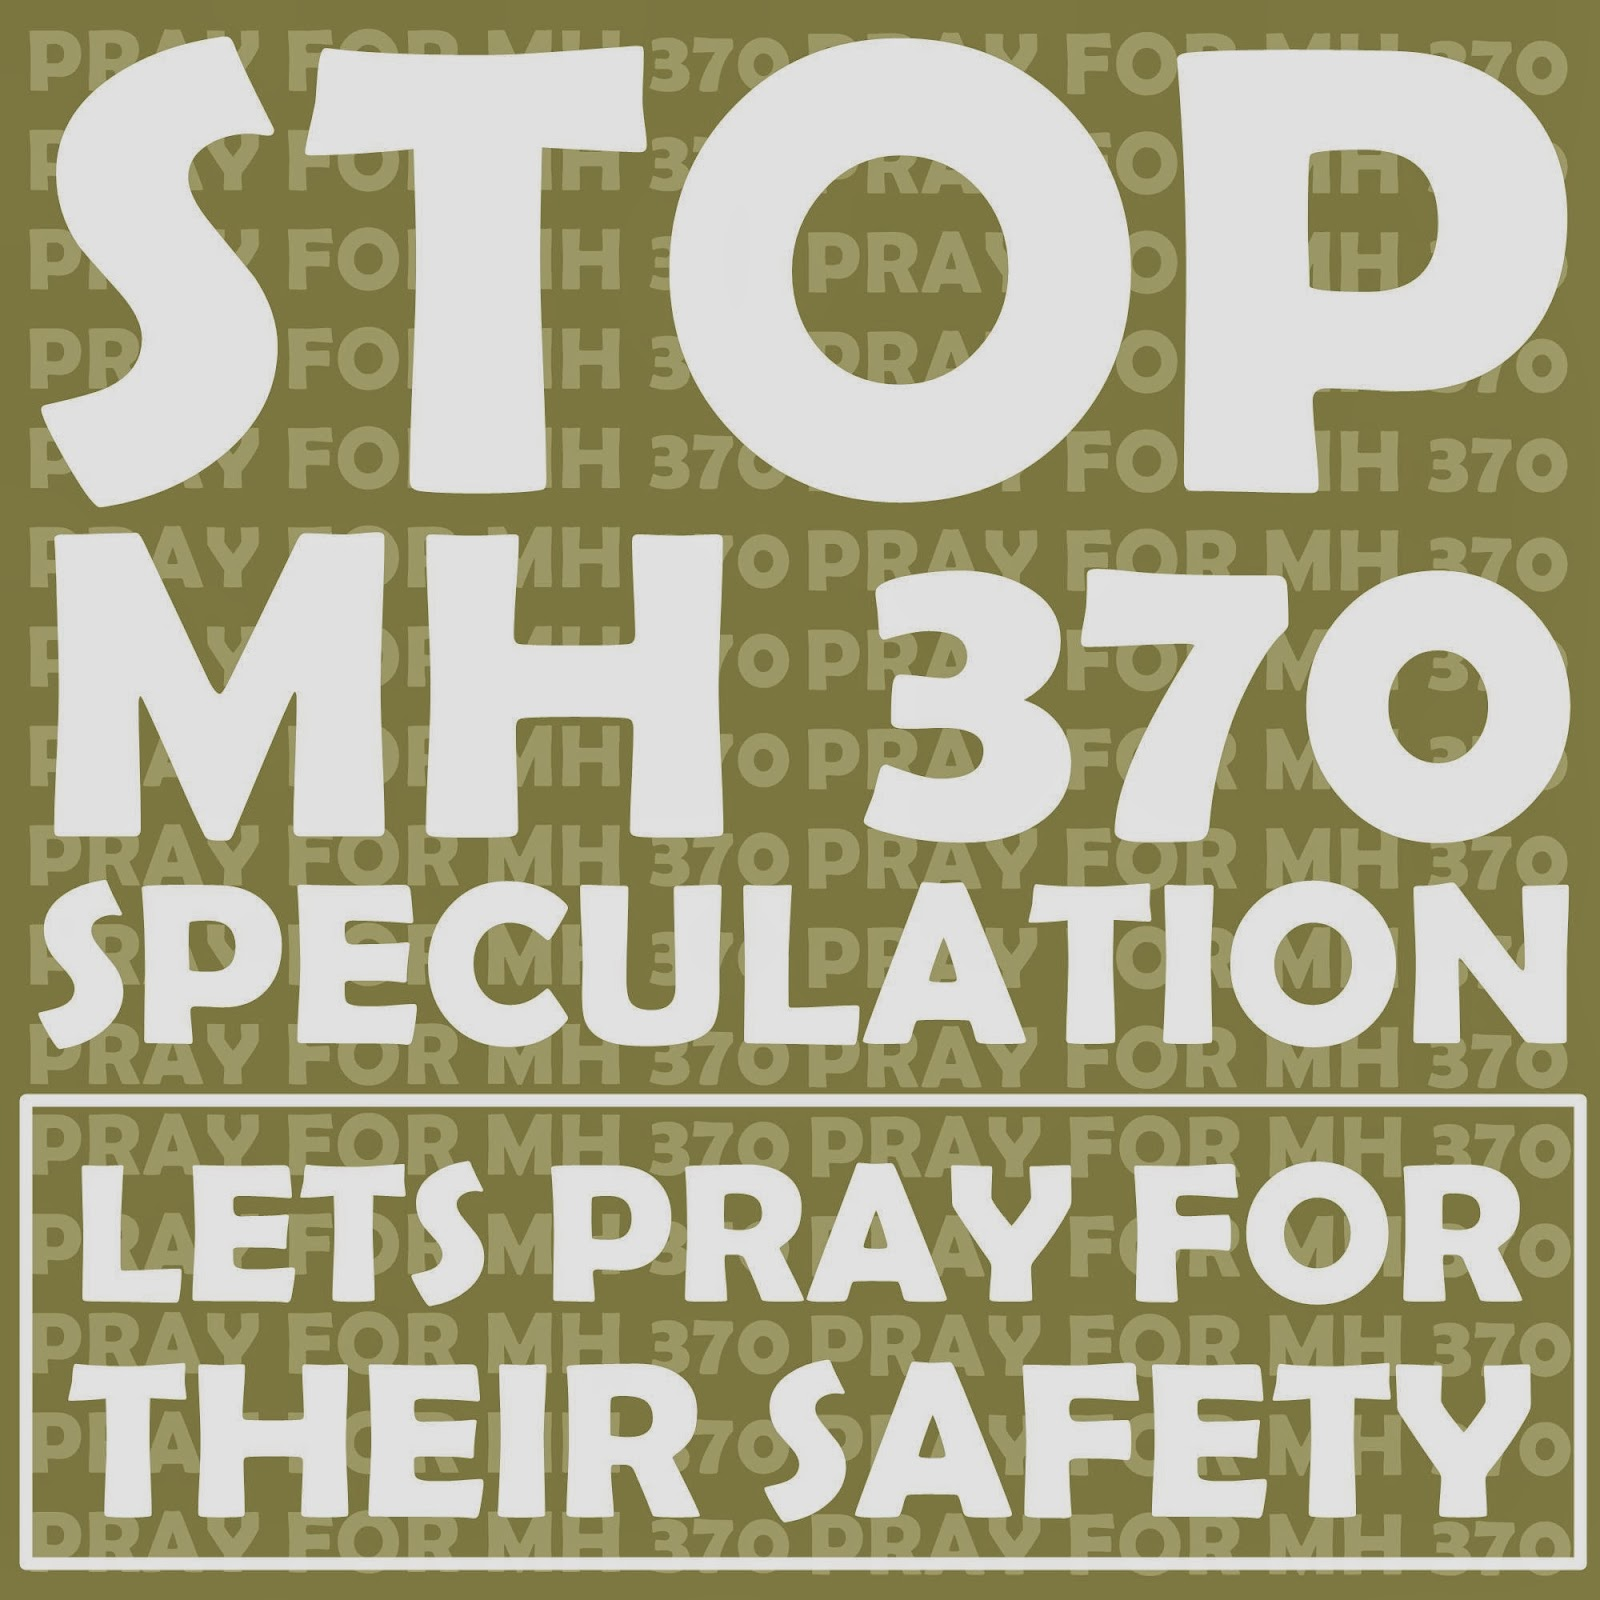 PRAY FOR MH 370 SAFETY